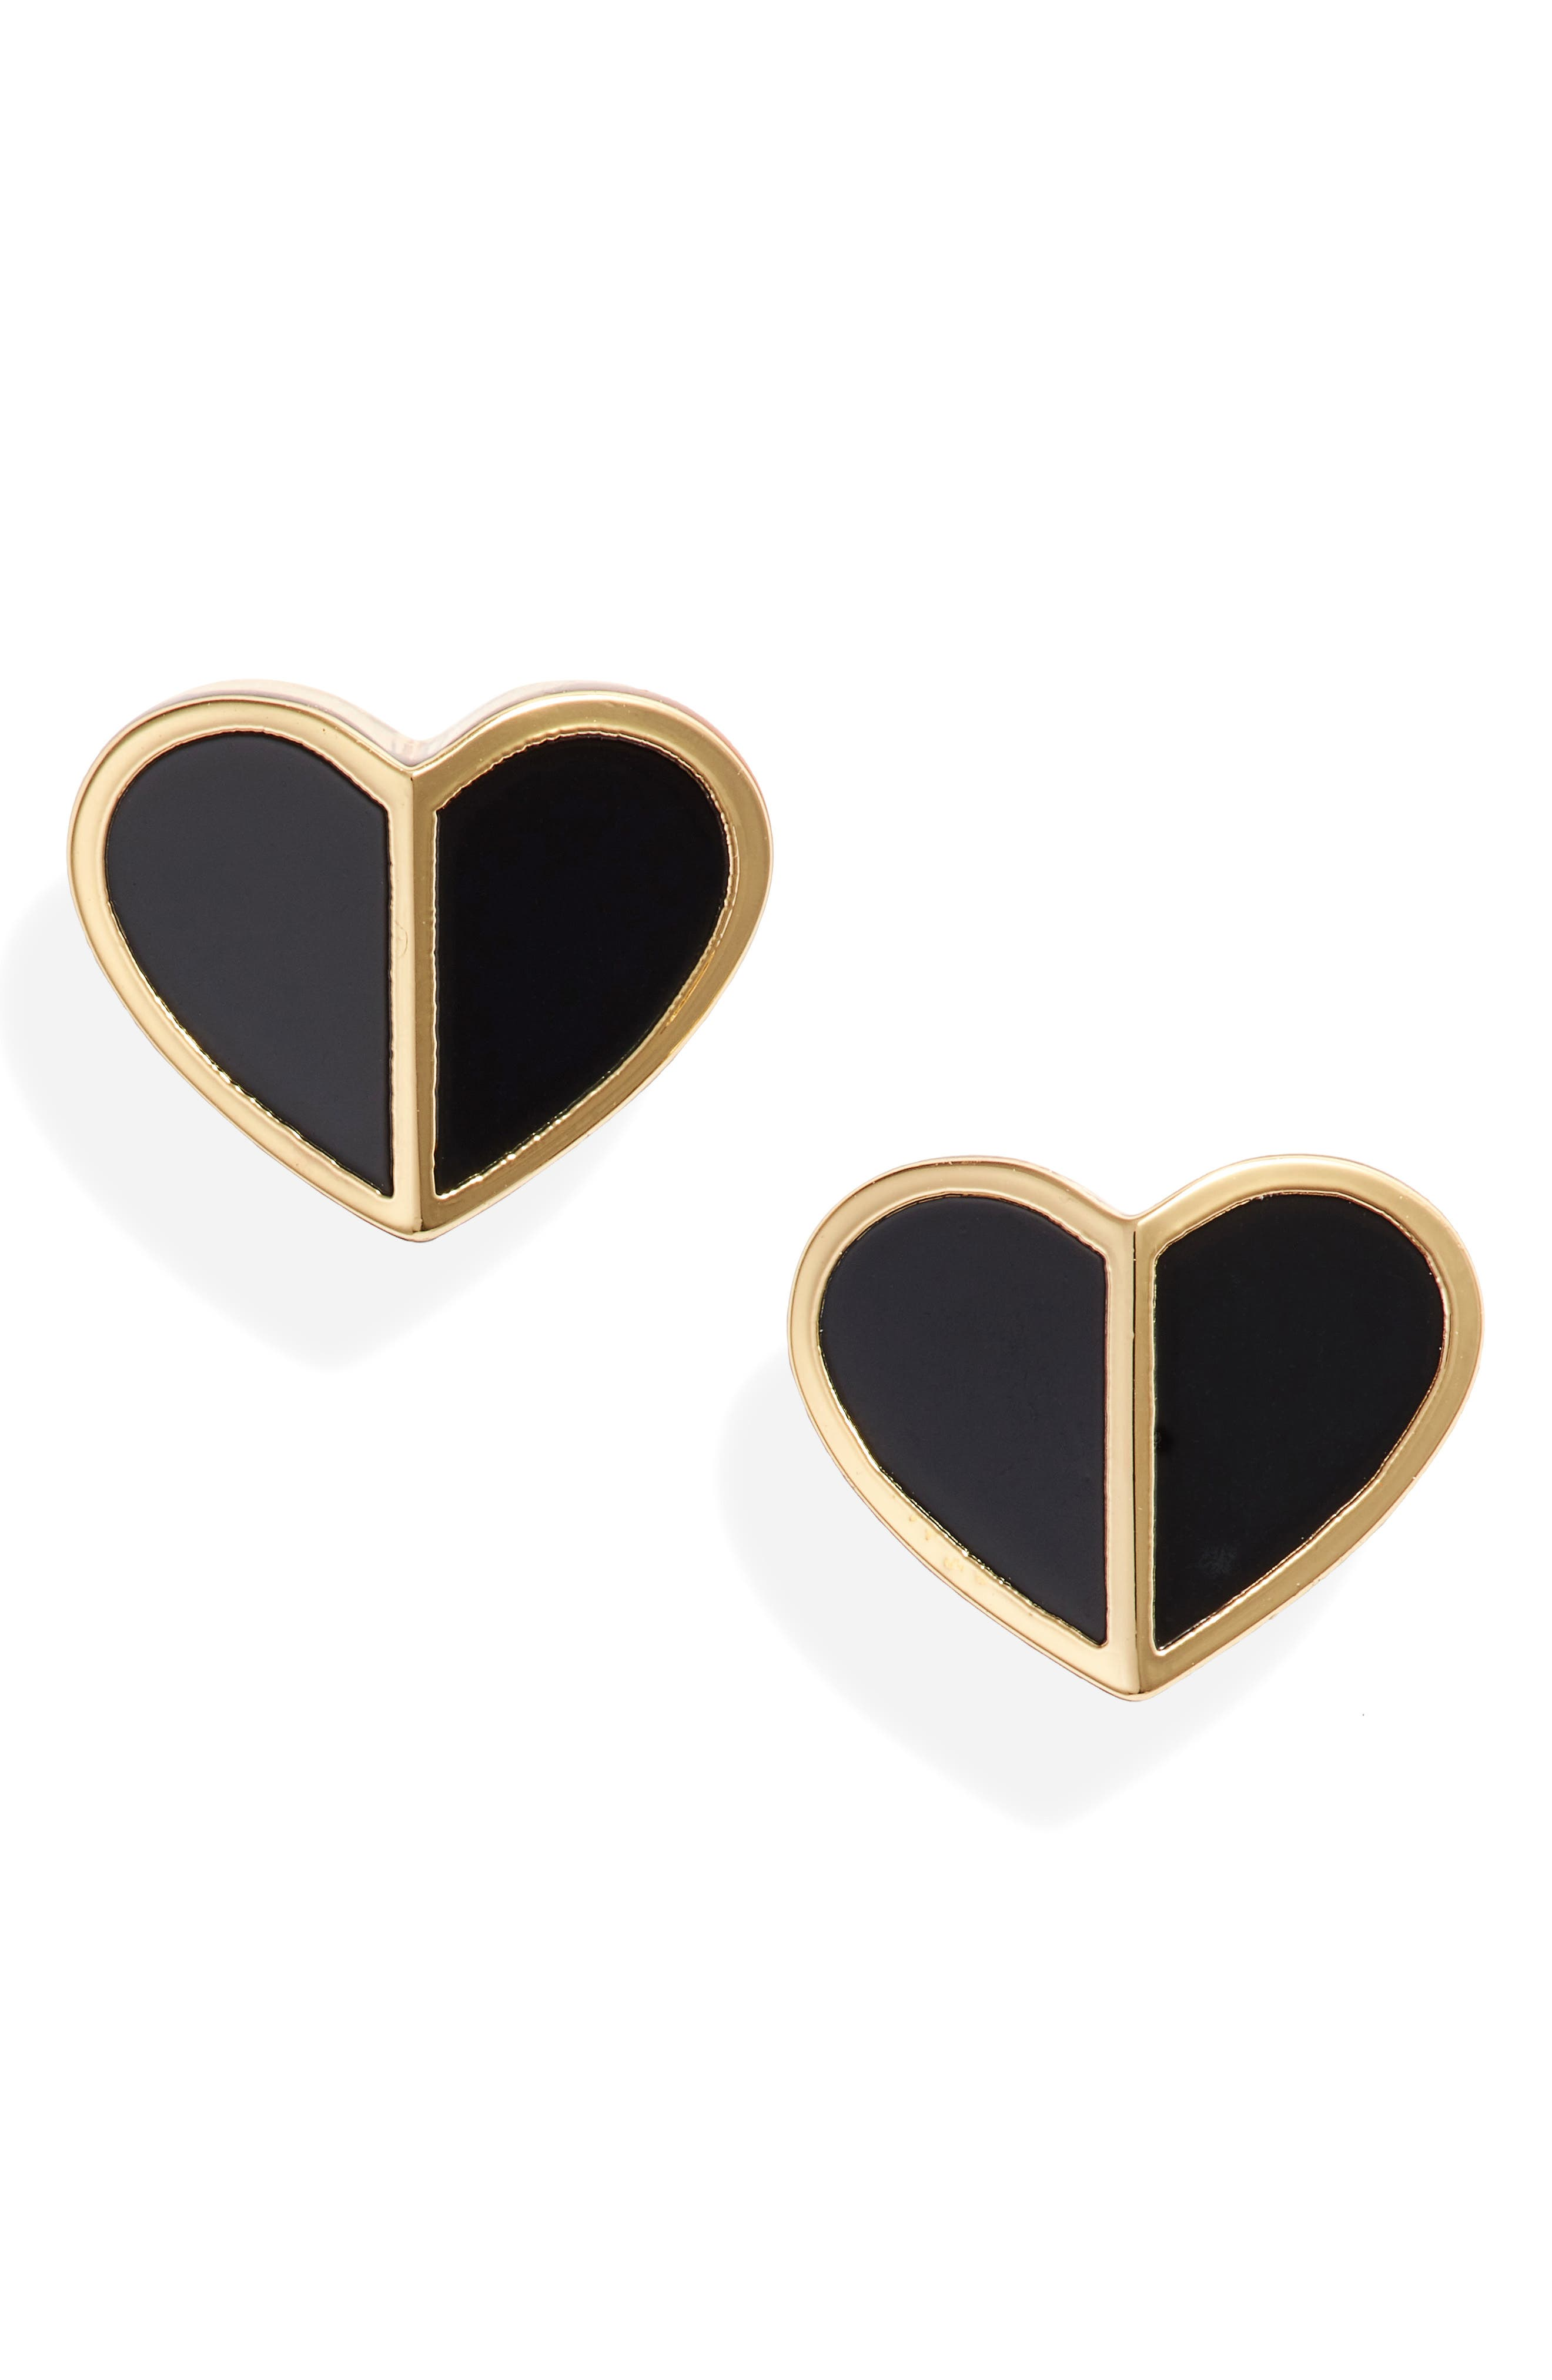 KATE SPADE NEW YORK, heart stud earrings, Main thumbnail 1, color, BLACK